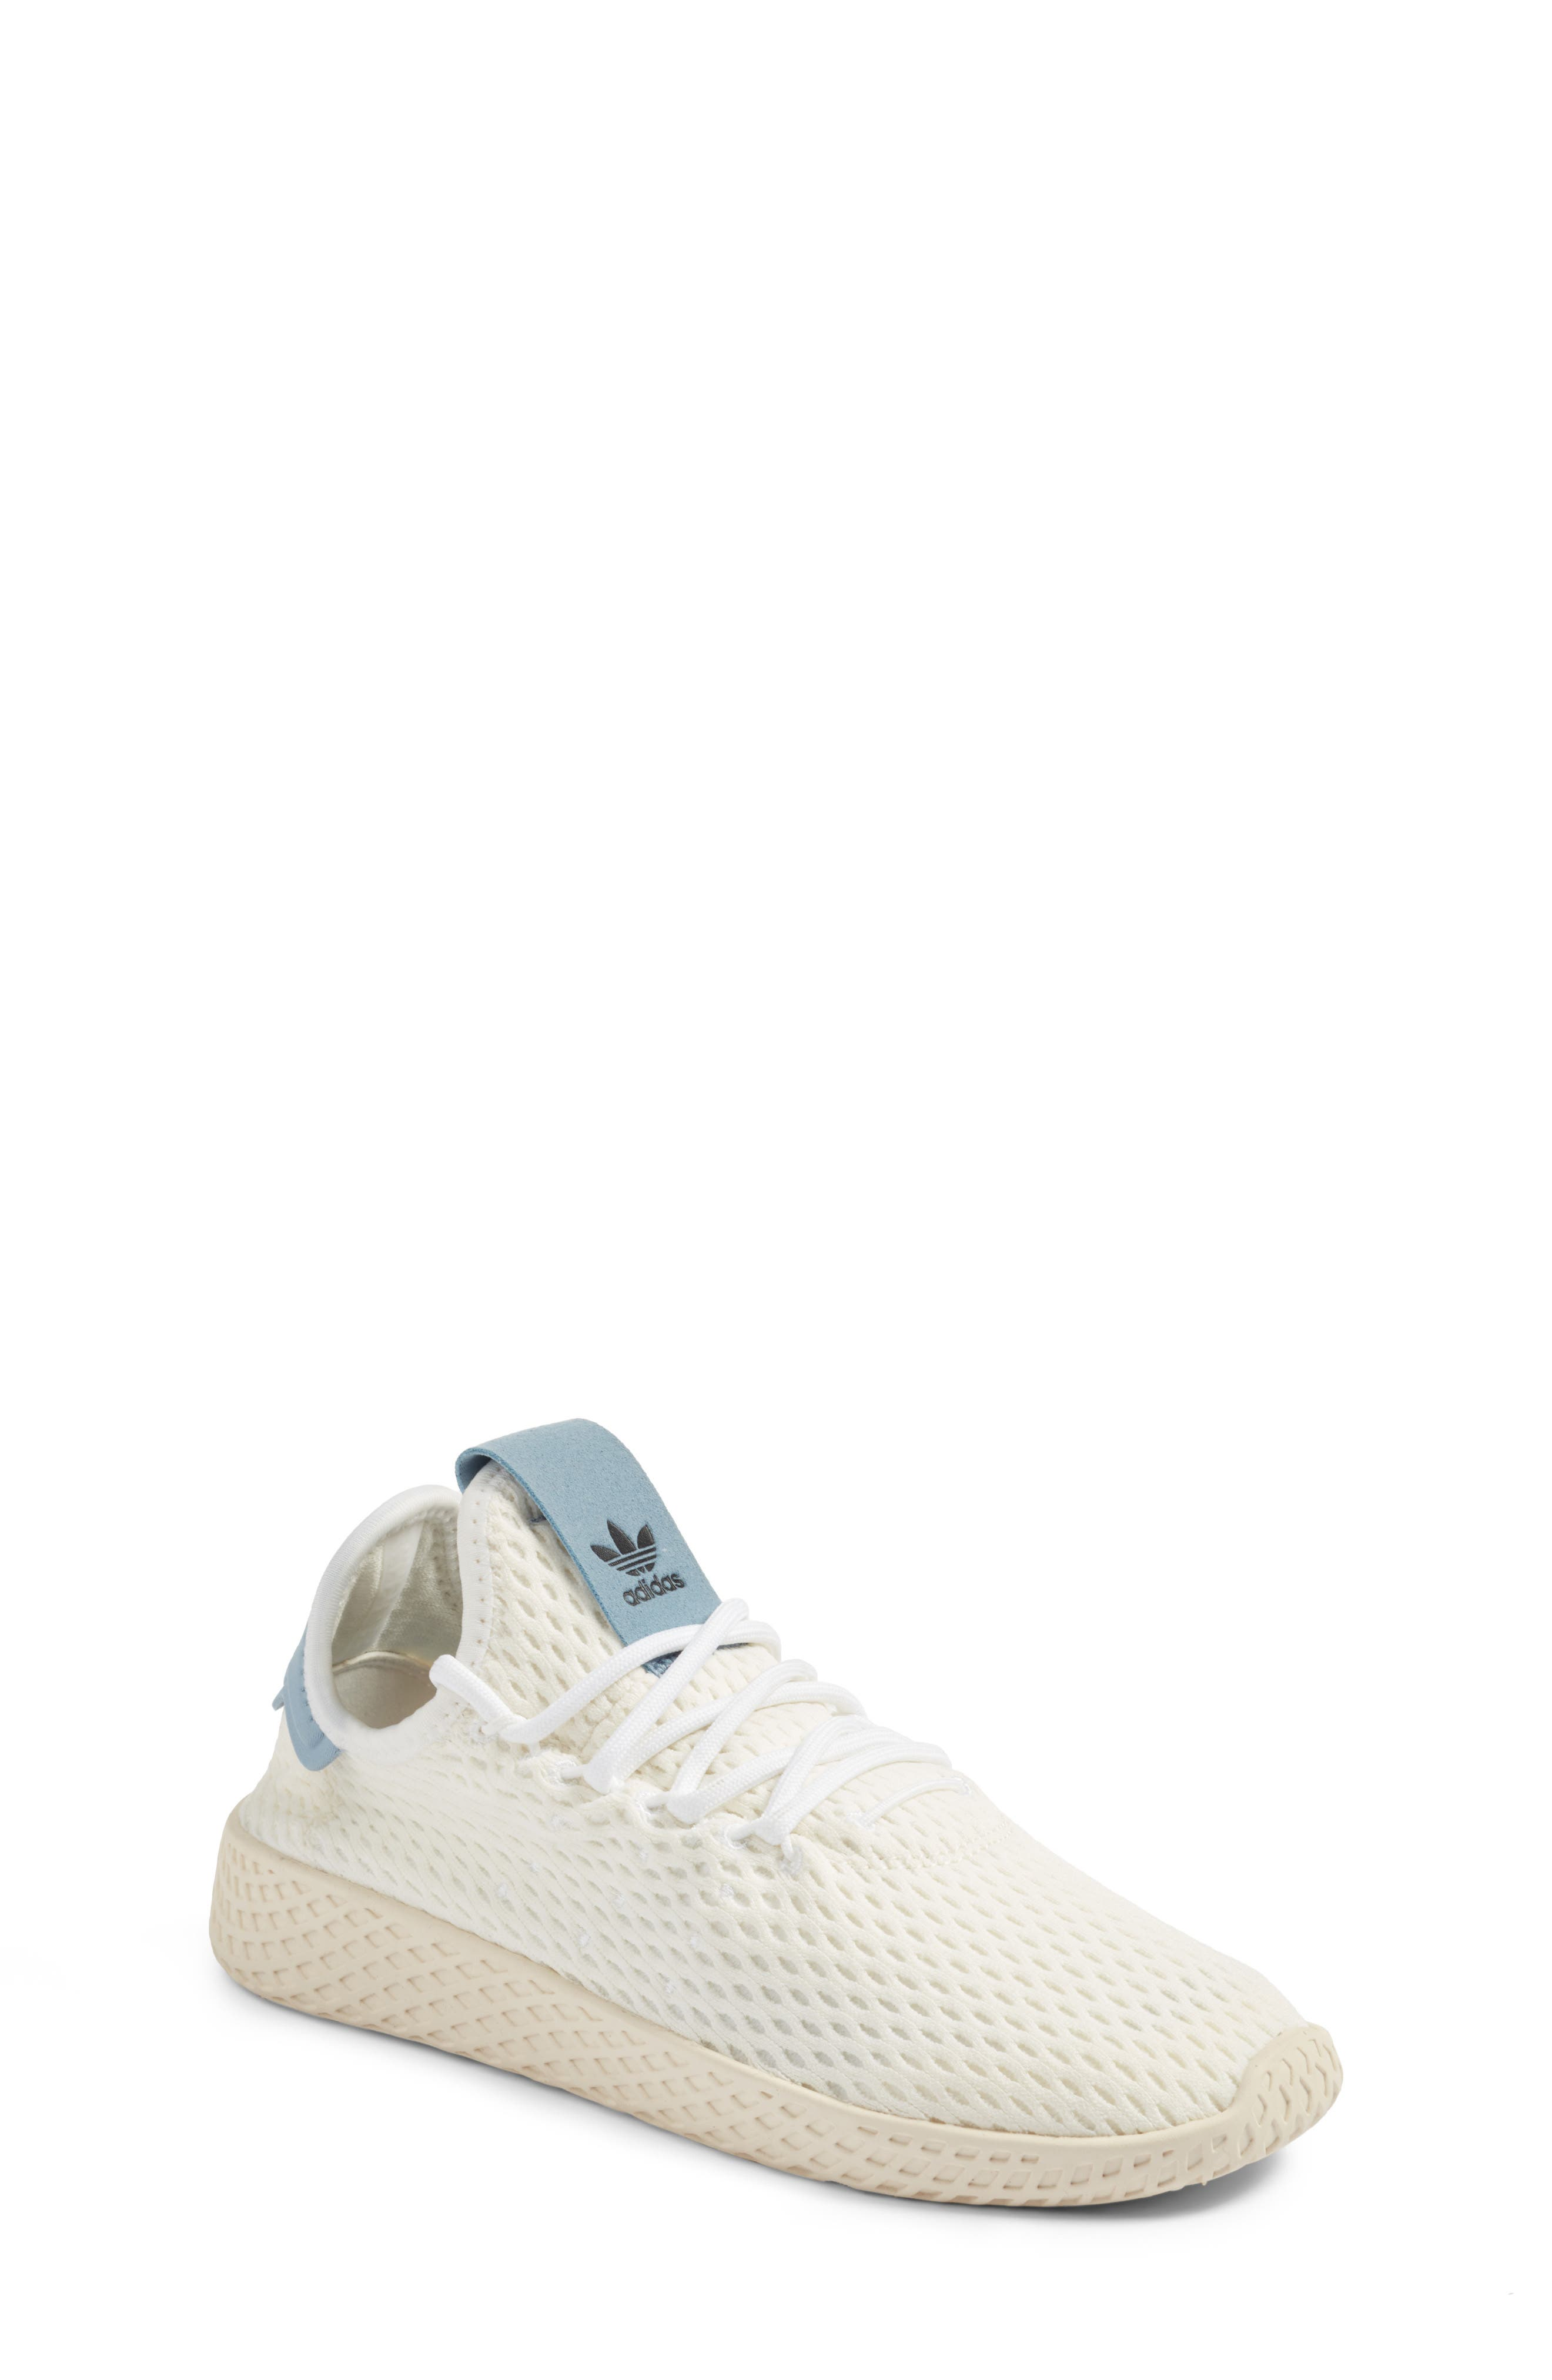 Originals x Pharrell Williams The Summers Mesh Sneaker,                         Main,                         color, Footwear White/ Tactile Blue